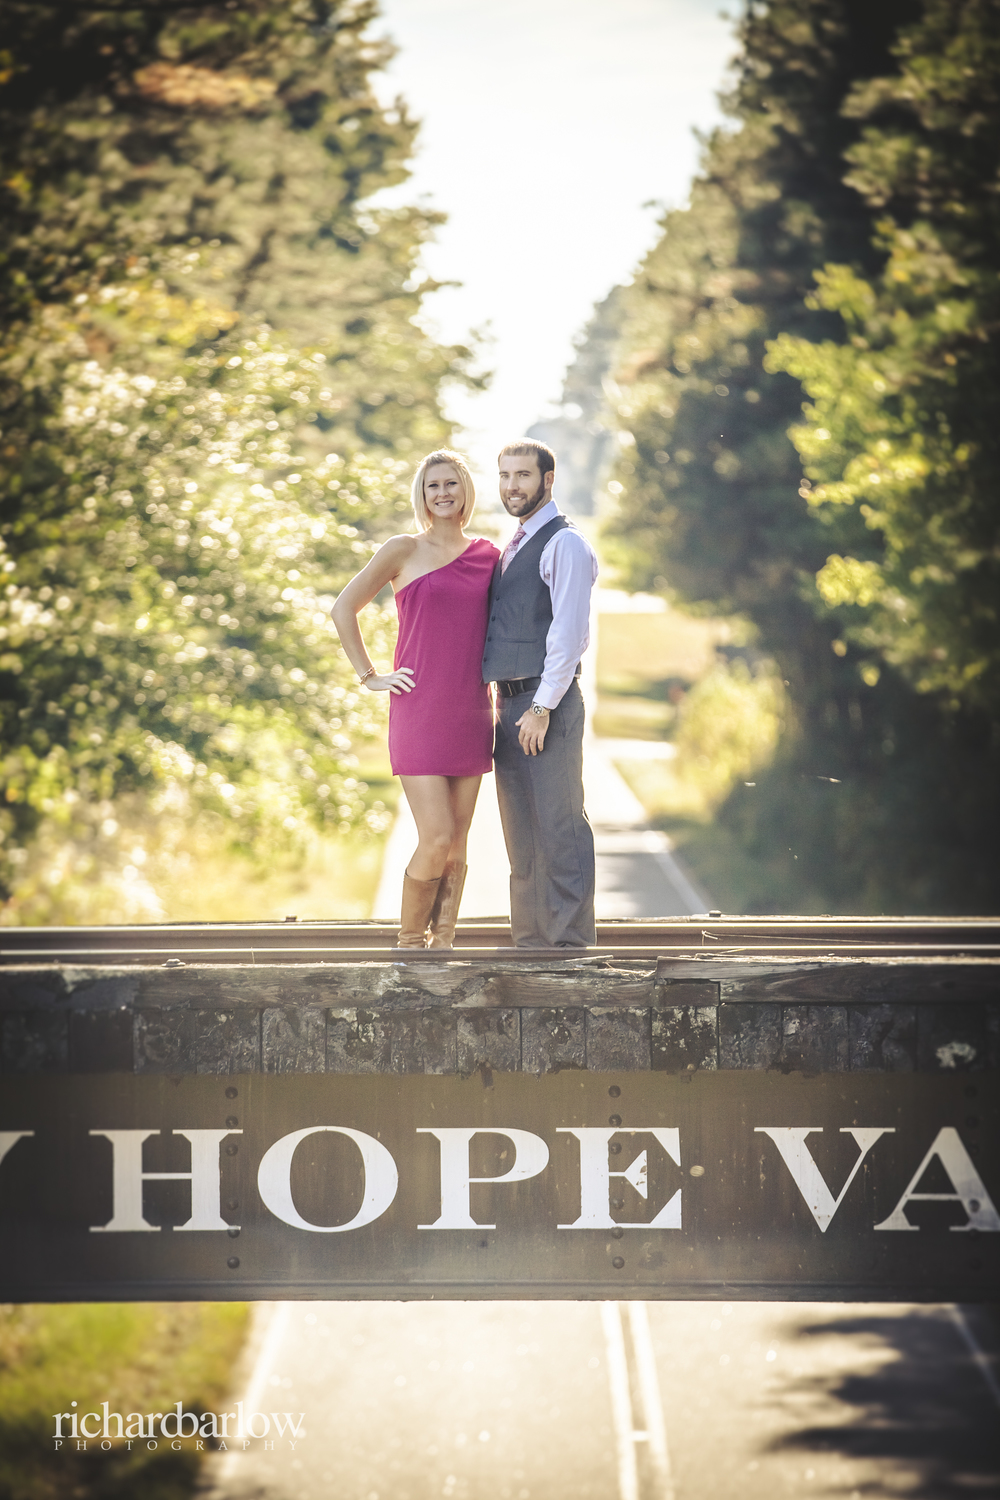 richard barlow photography - Mike and Renee Engagement Session NC-3.jpg